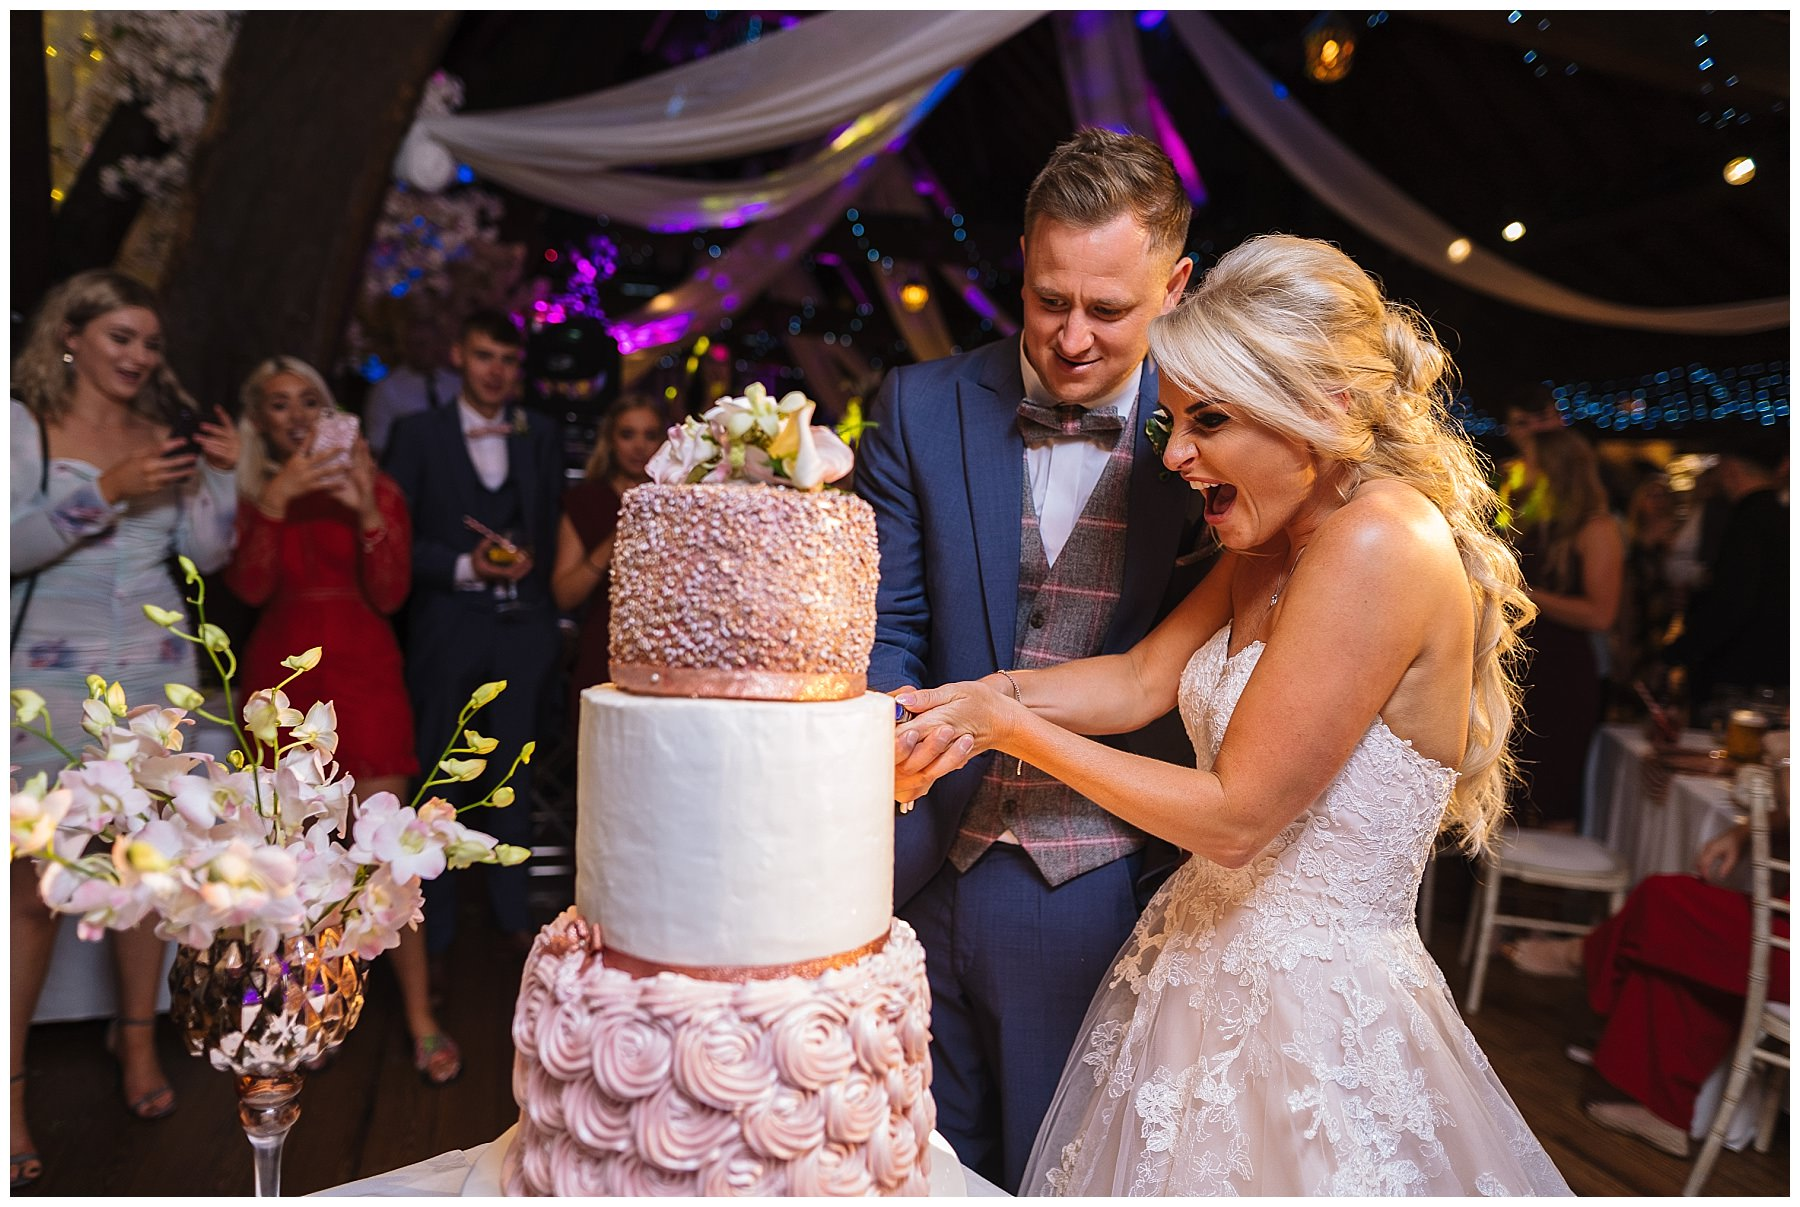 Amazing three tier wedding cake is cut by bride and groom at rivington barn wedding